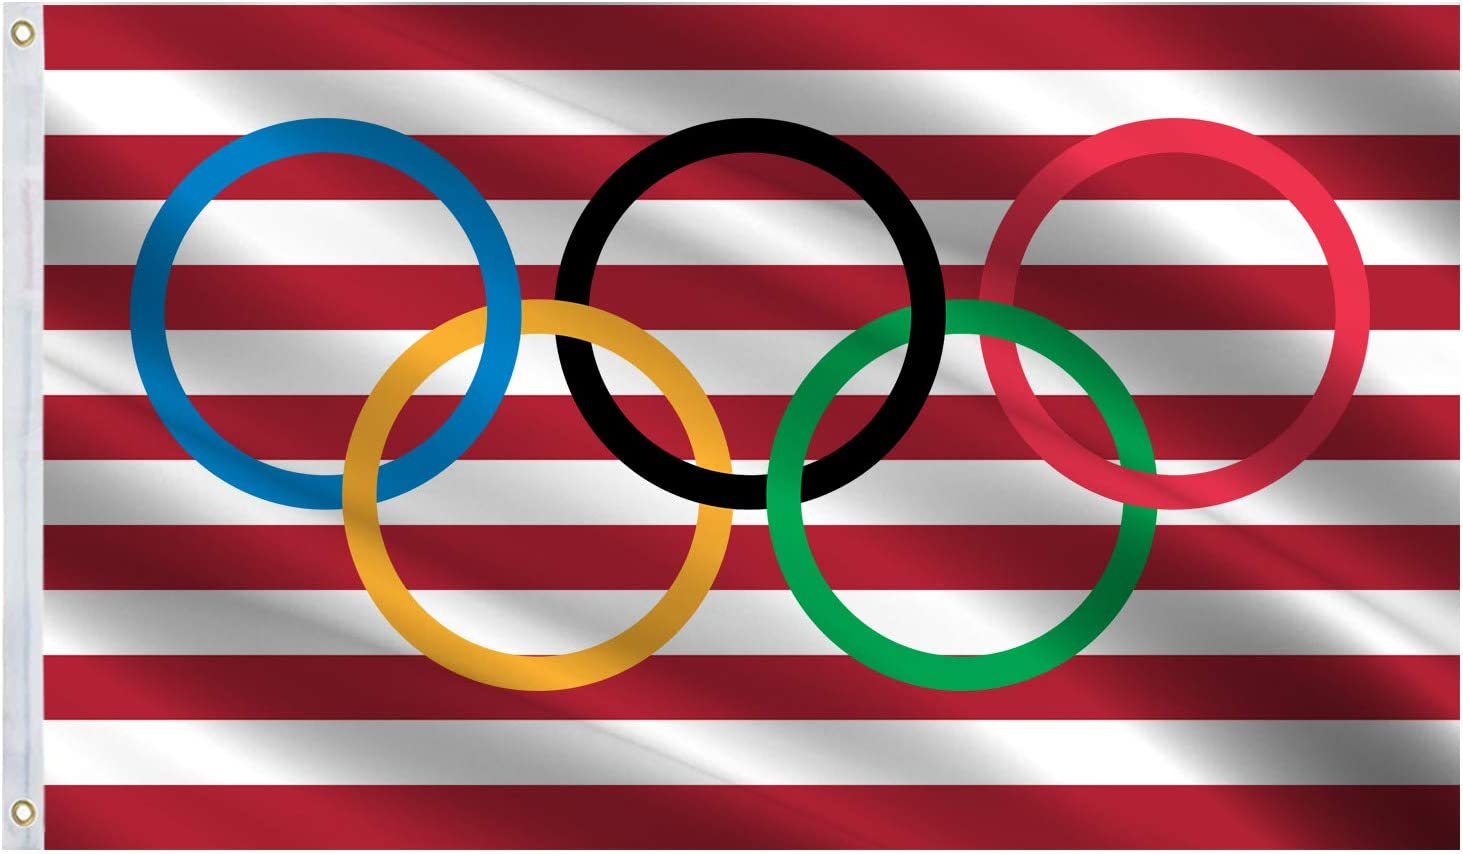 Olympic Games Flag 3x5 Ft Large,Vivid Color and UV Fade Resistant-Olympics Rings International Banner Flag Great for College Dorm,Room Decor,Outdoor,Parties,Gift,Tailgates 36x60inch